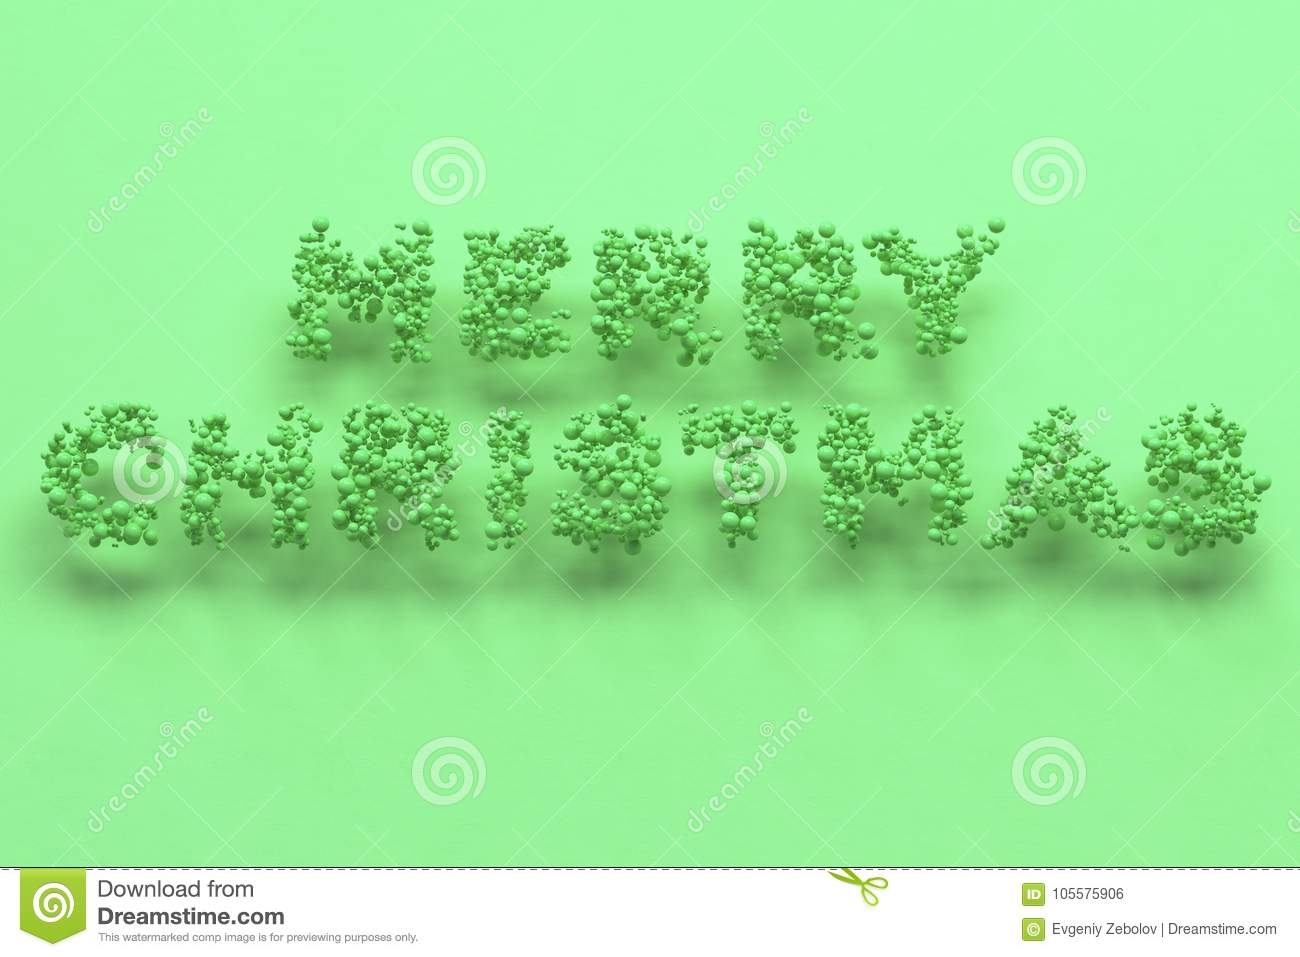 download merry christmas words from green balls on green background stock illustration illustration of sale